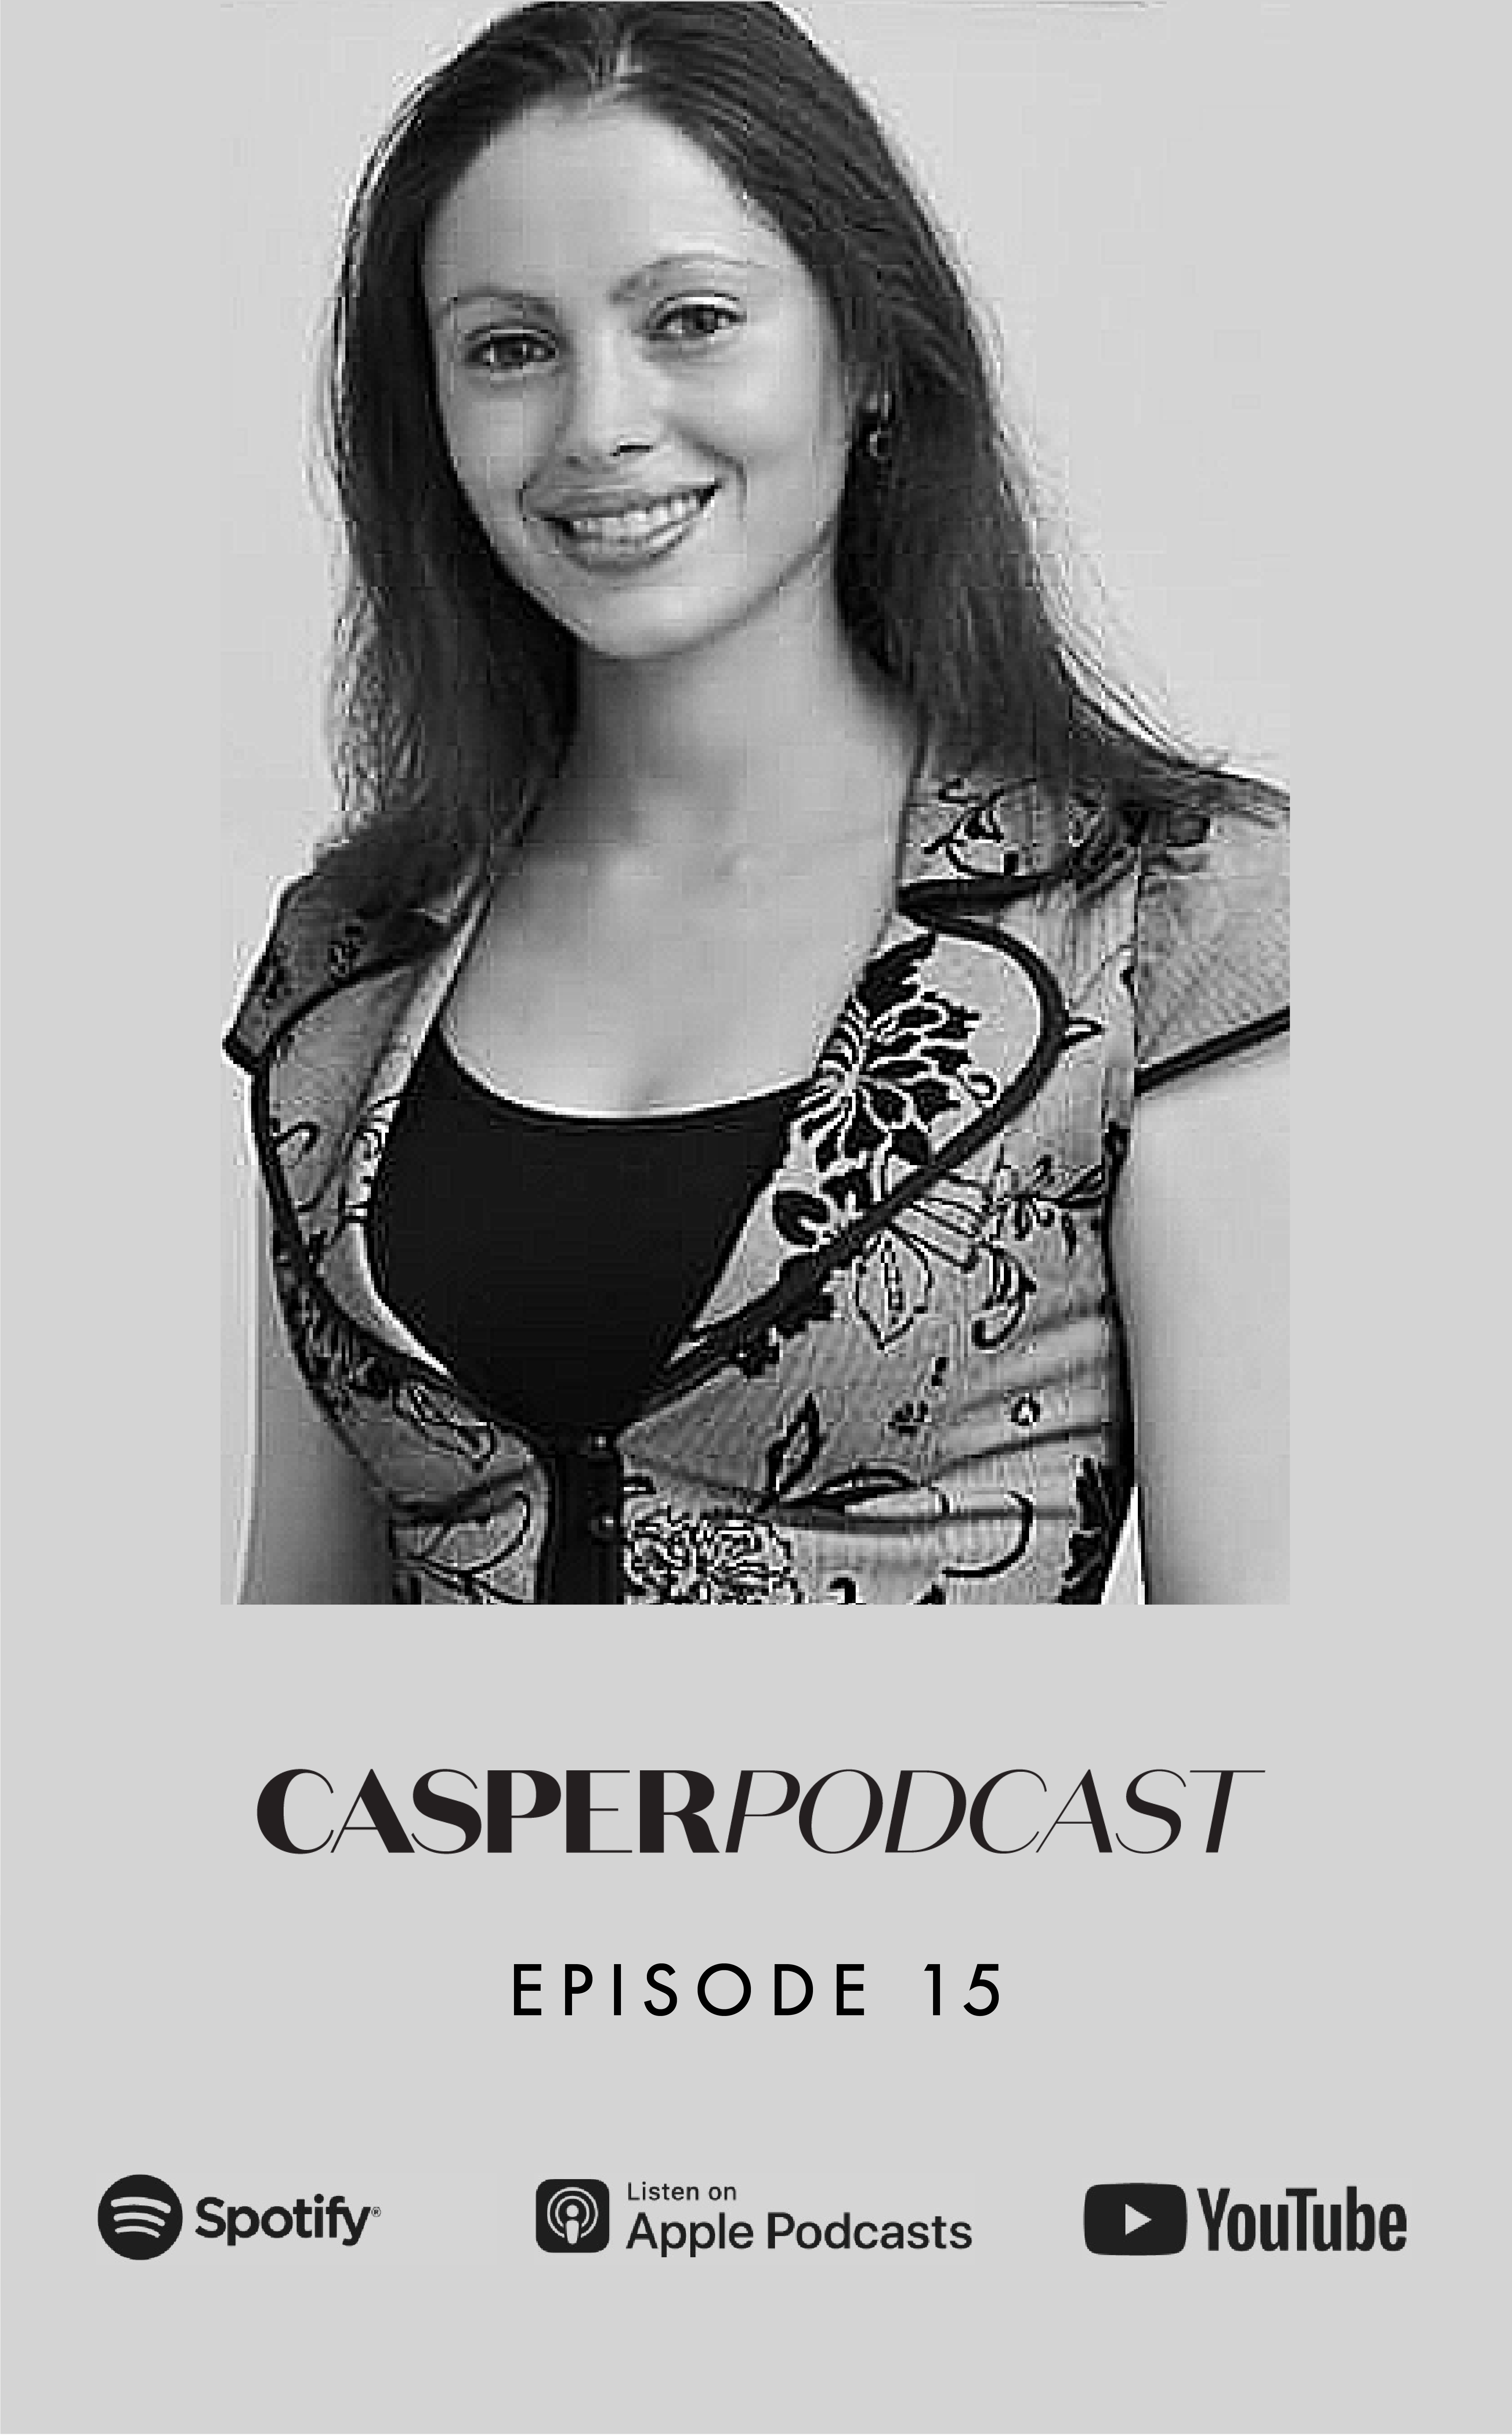 Episode 15 All Things Dentistry with Dr. Helen Voronina